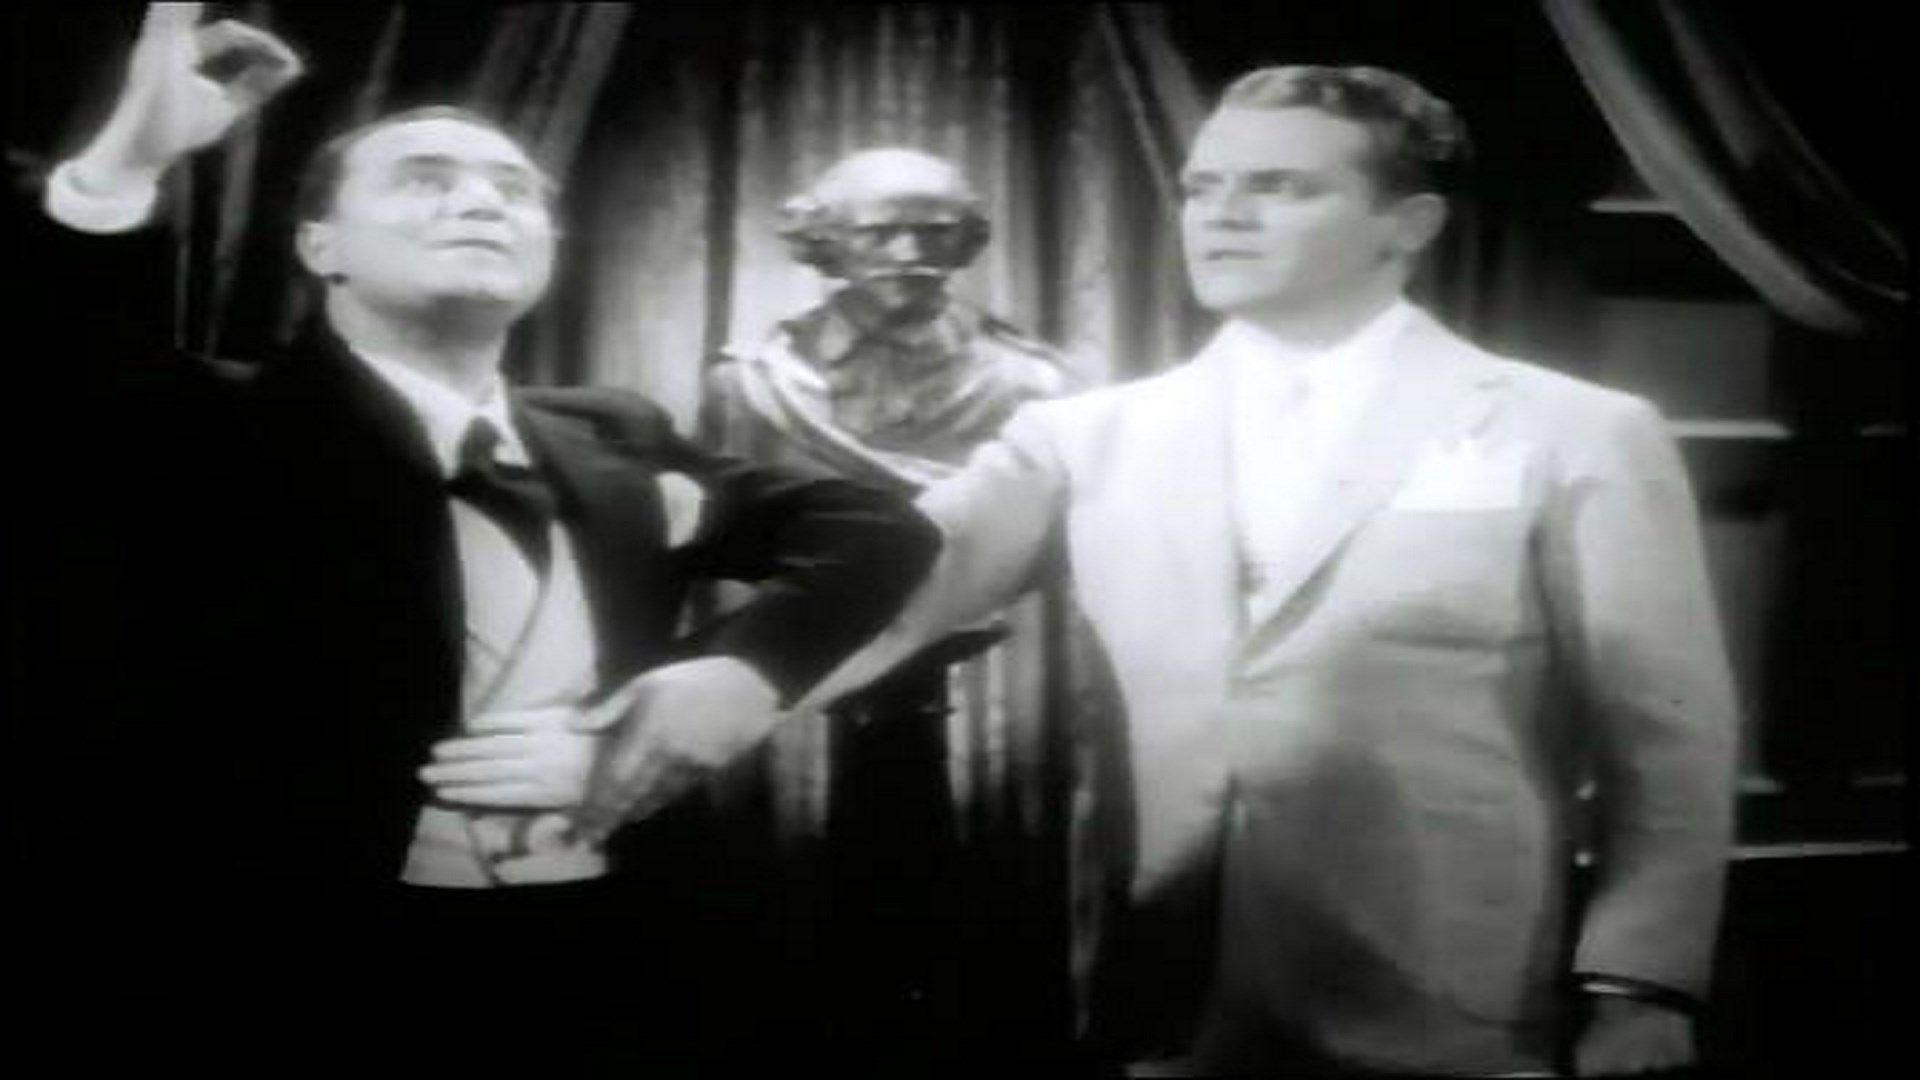 a critique of the movie something to sing about Something to sing about (grand national, 1937), directed by victor schertzinger, stars movie tough guy james cagney in his second screen musical though not in the busby berkeley tradition as footlight parade (1933) where cagney sang and dance for the first time, nor academy award.